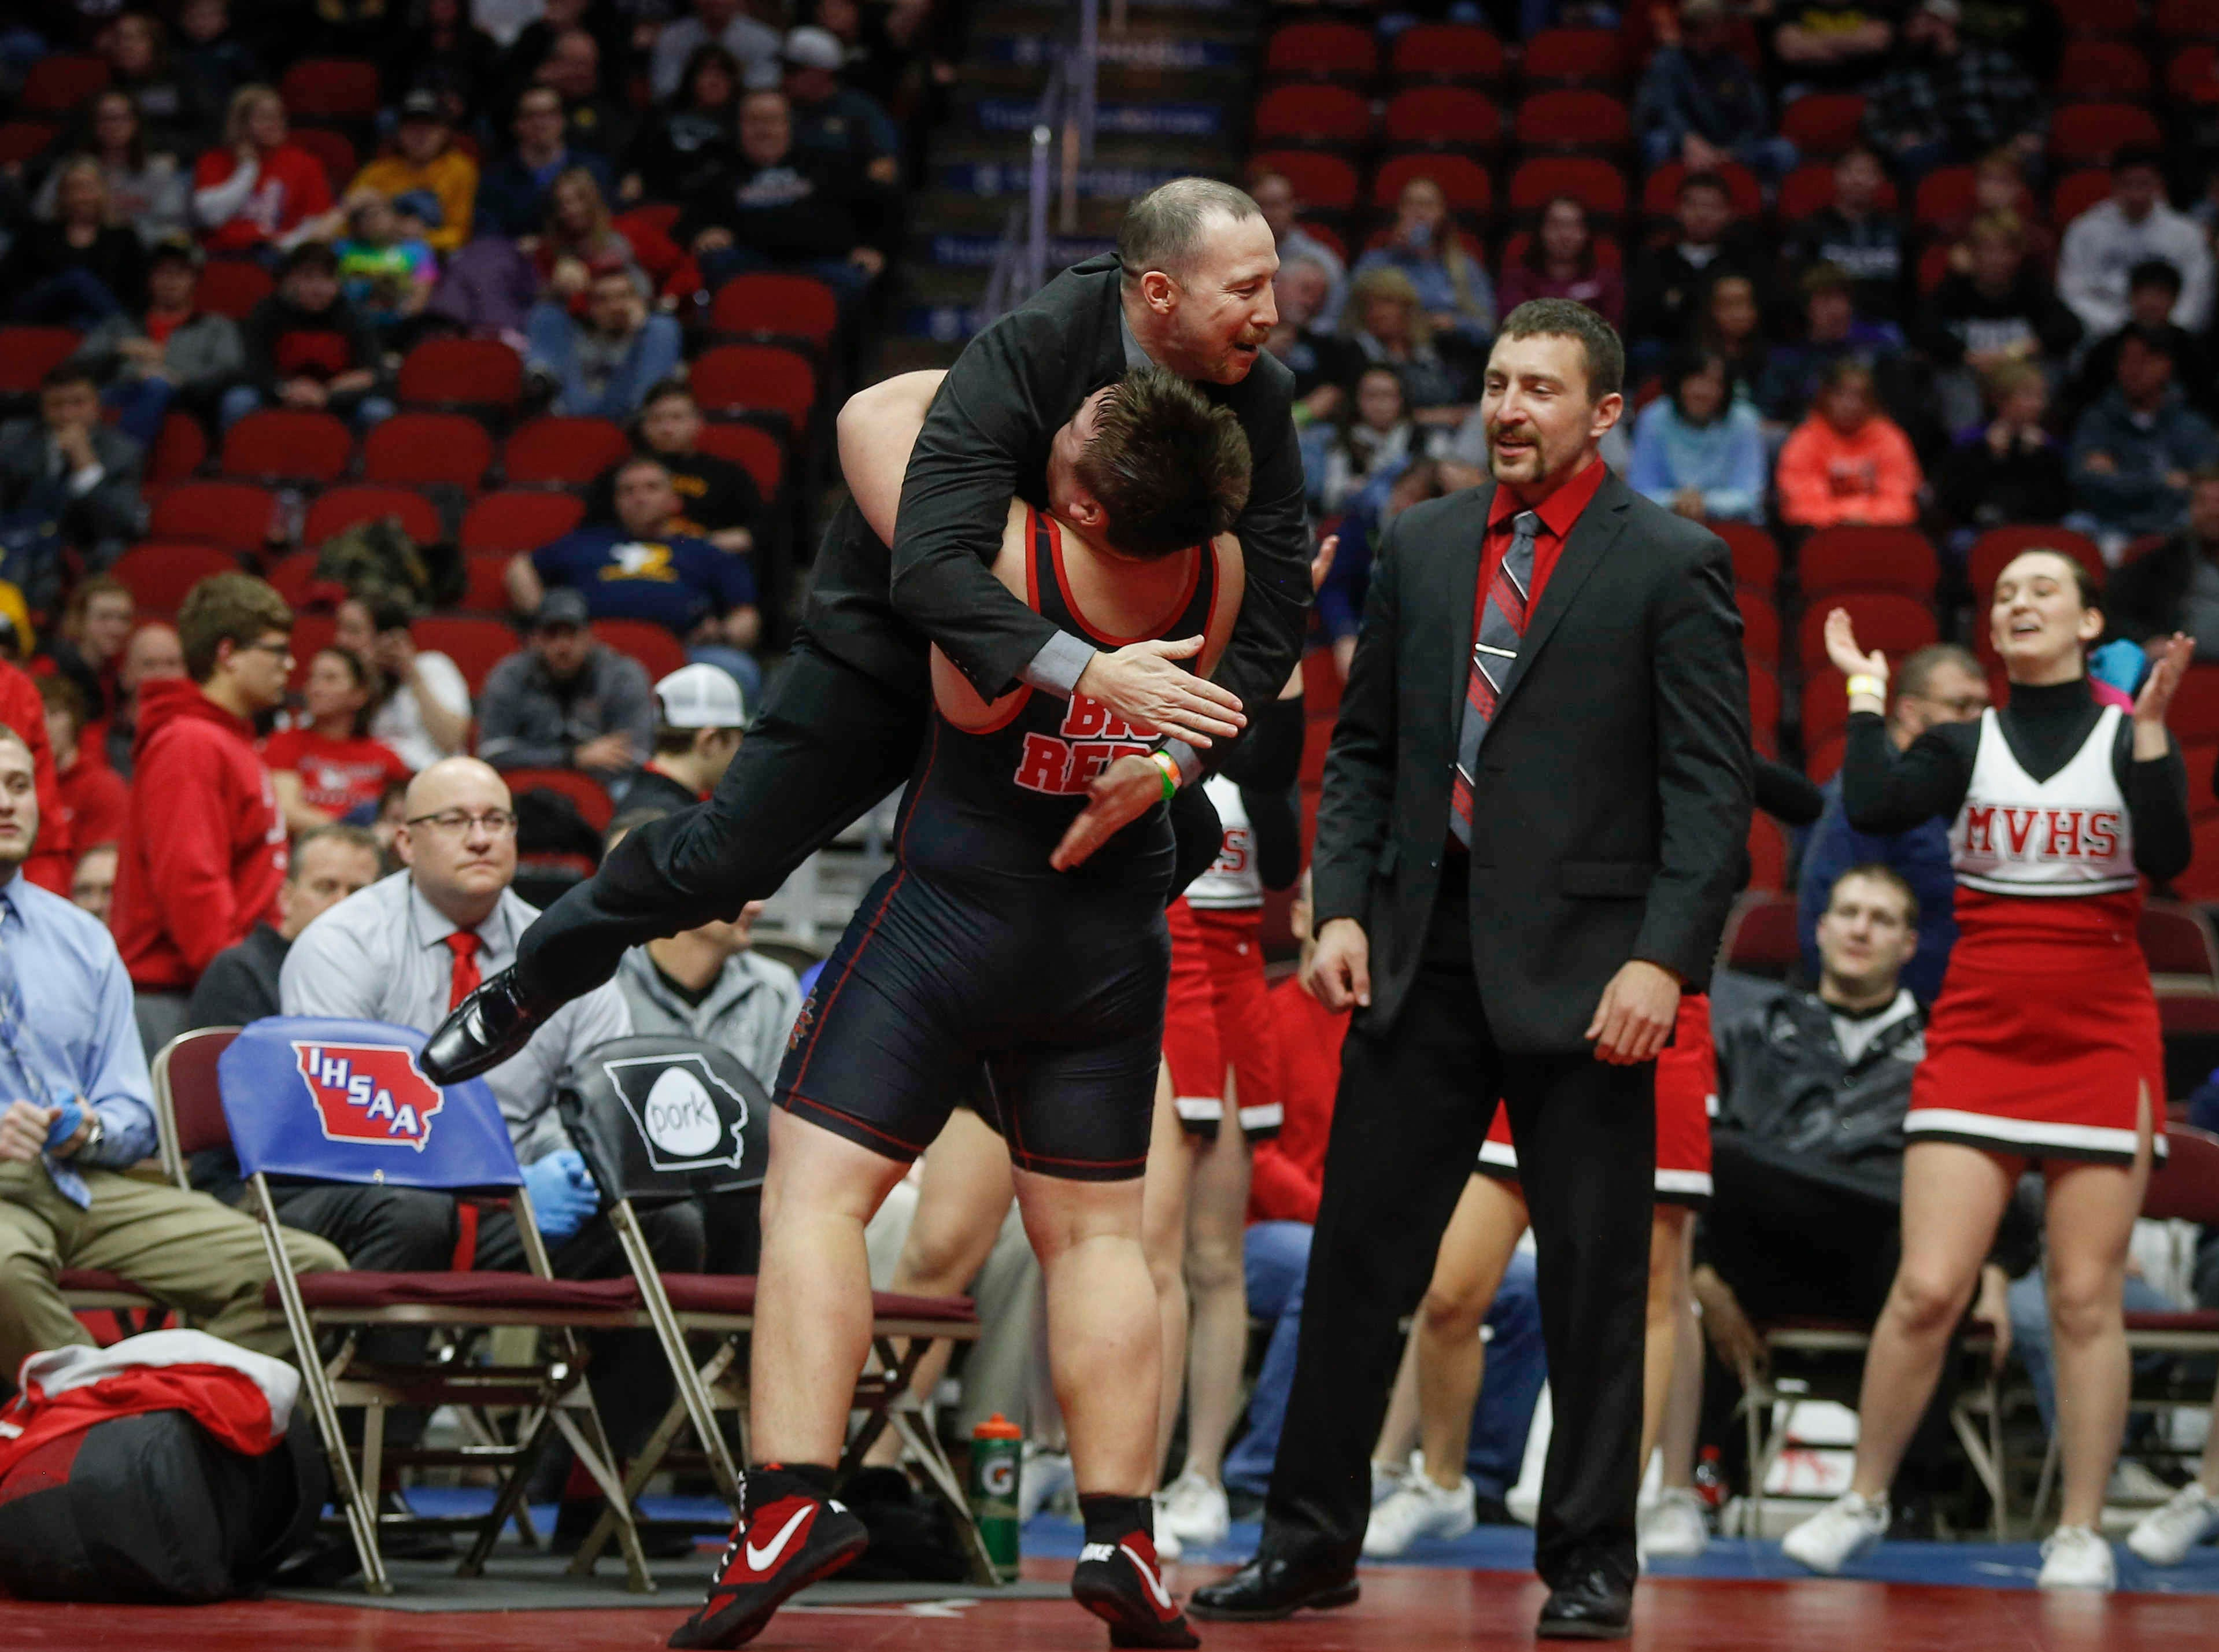 Missouri Valley senior Arron Olson celebrates a Class 1A state title win over Don Bosco senior Noah Pittman at 285 pounds on Saturday, Feb. 16, 2019, at Wells Fargo Arena in Des Moines.